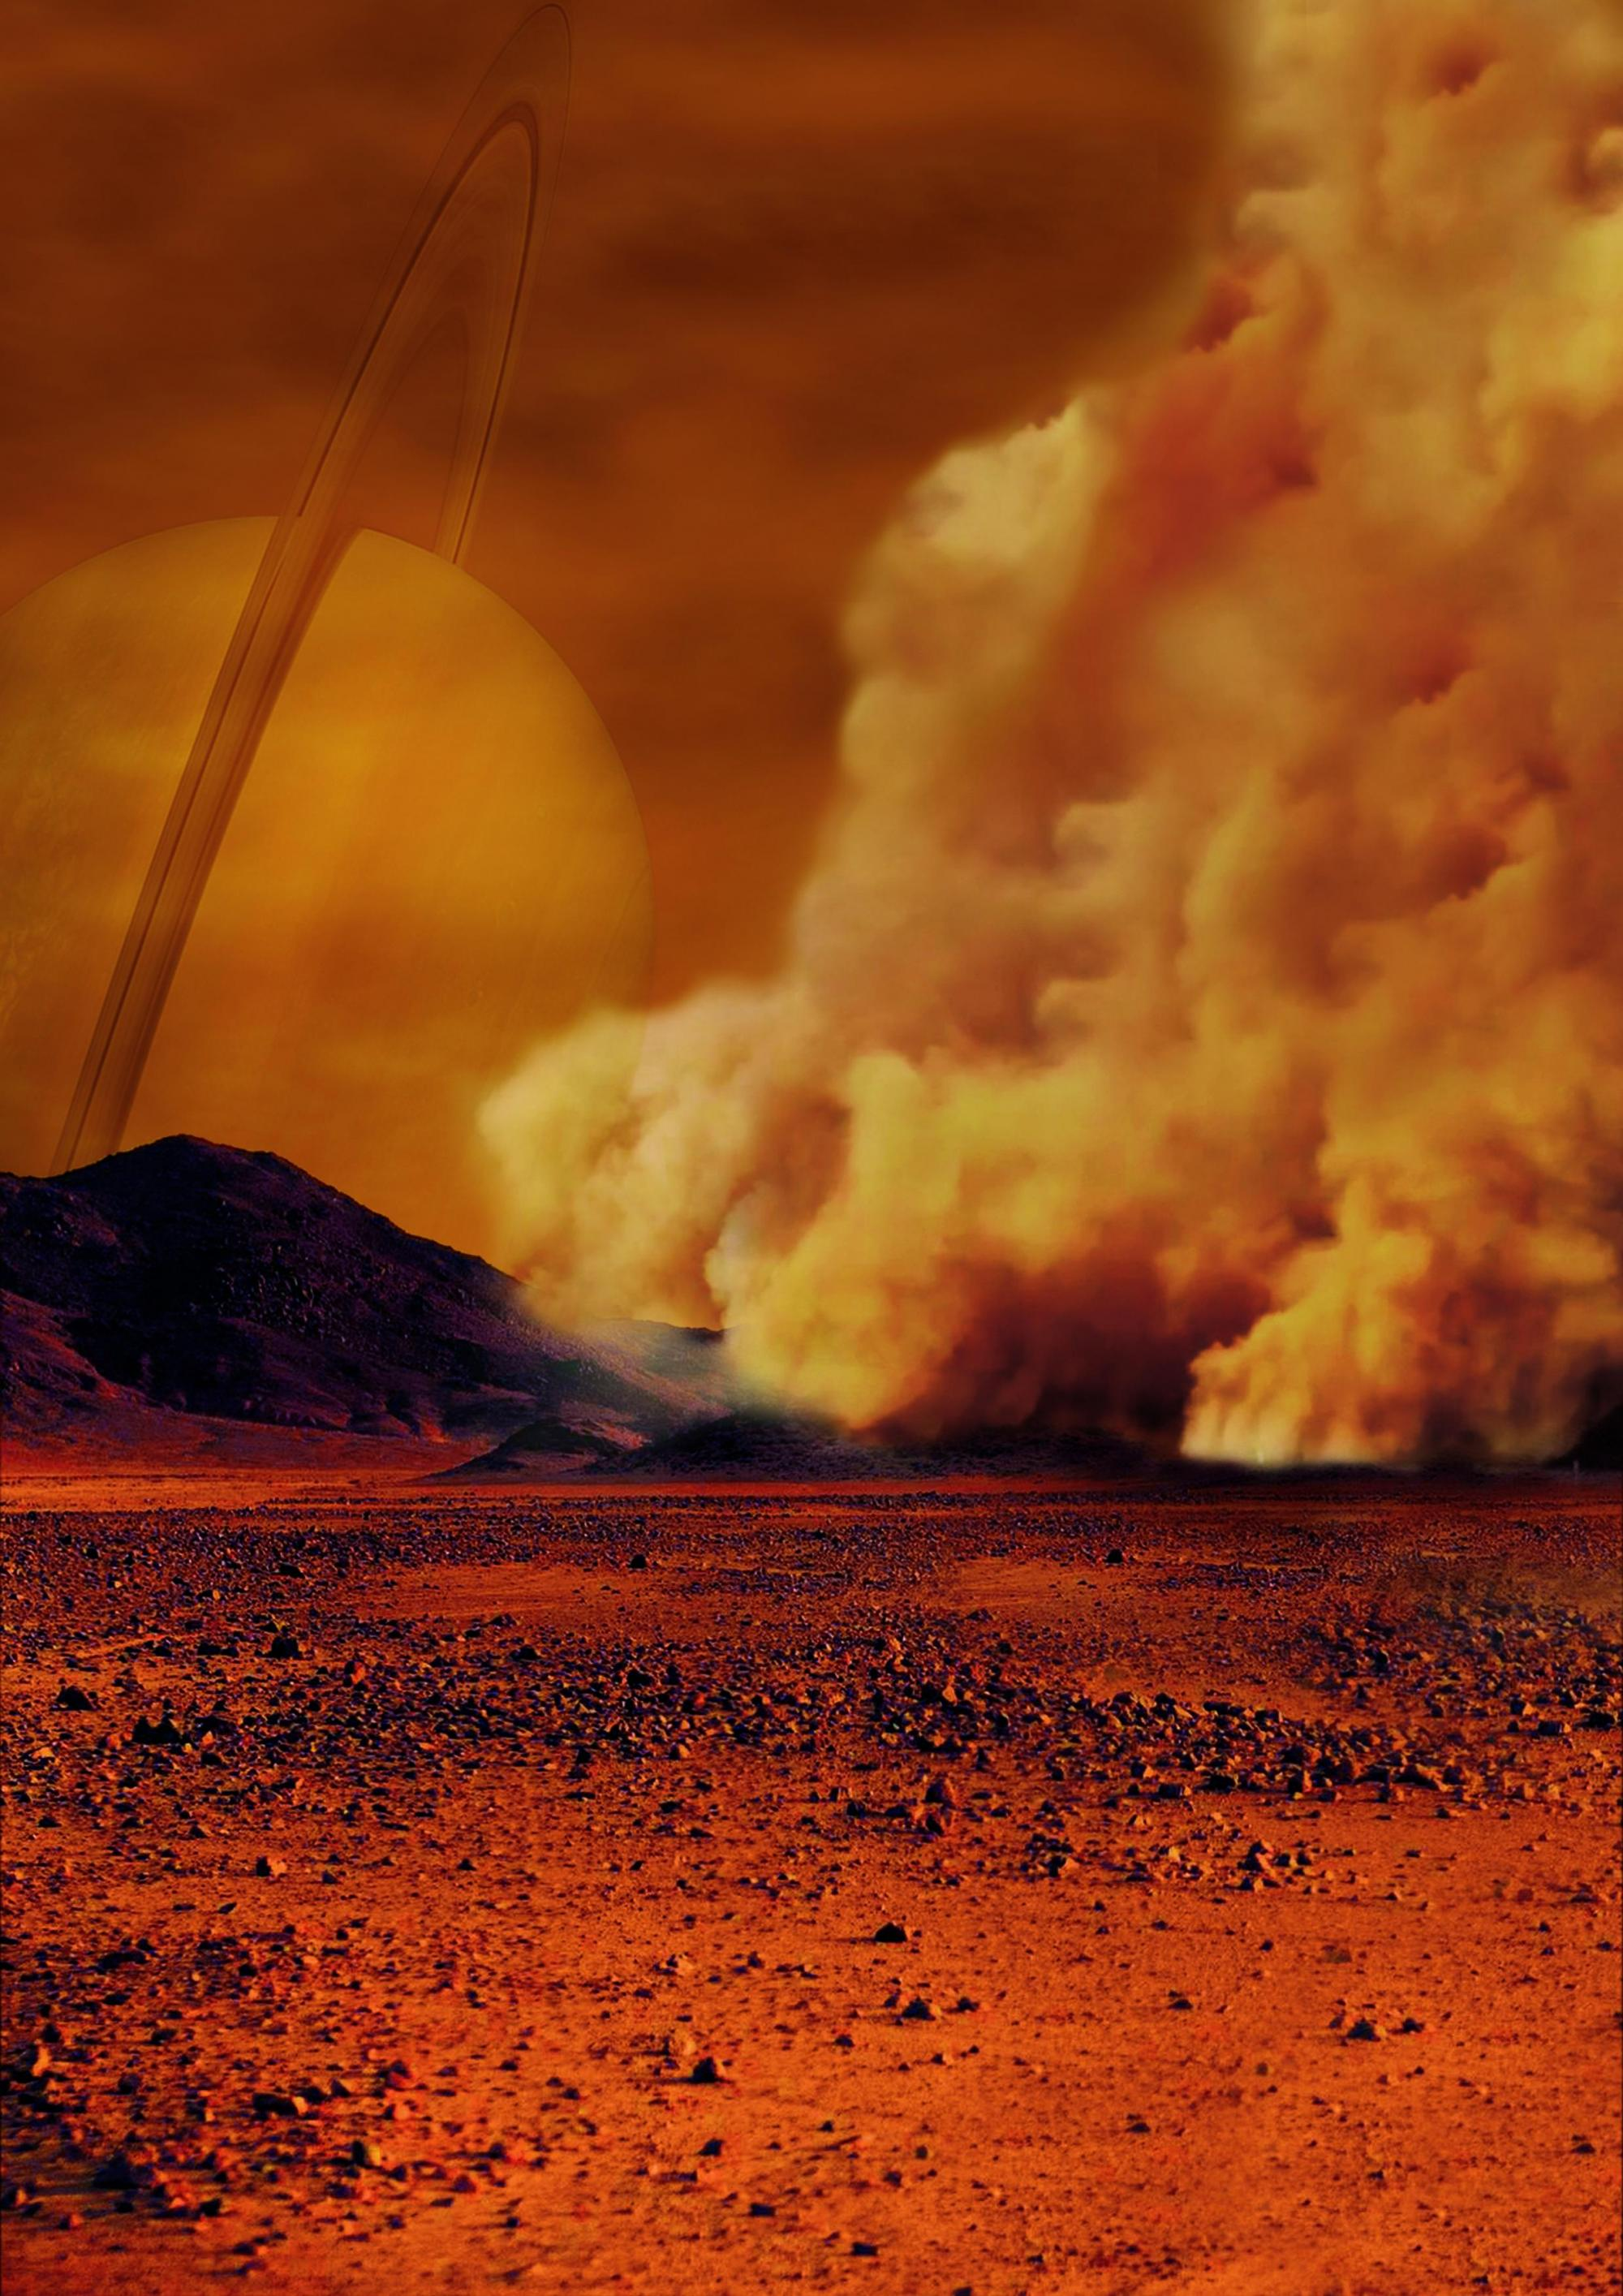 An artist's concept of a dust storm on Titan. Researchers believe that huge amounts of dust can be raised on Titan, Saturn's largest moon, by strong wind gusts that arise in powerful methane storms.